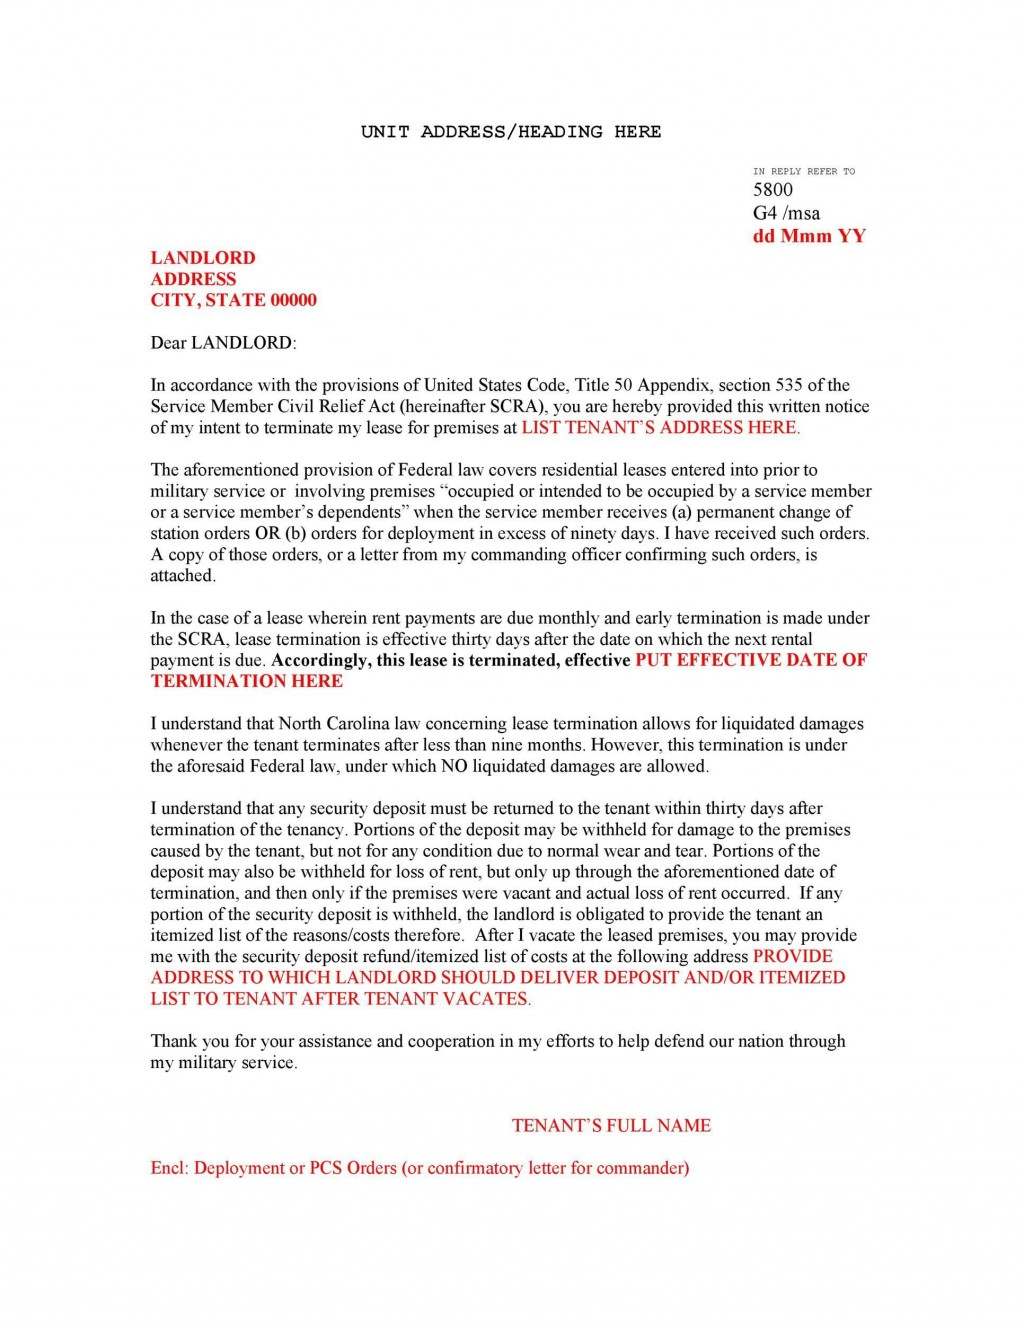 007 Unusual Sample Letter For Terminating Rental Agreement Highest Clarity  Terminate Tenancy To Lease From Landlord ALarge